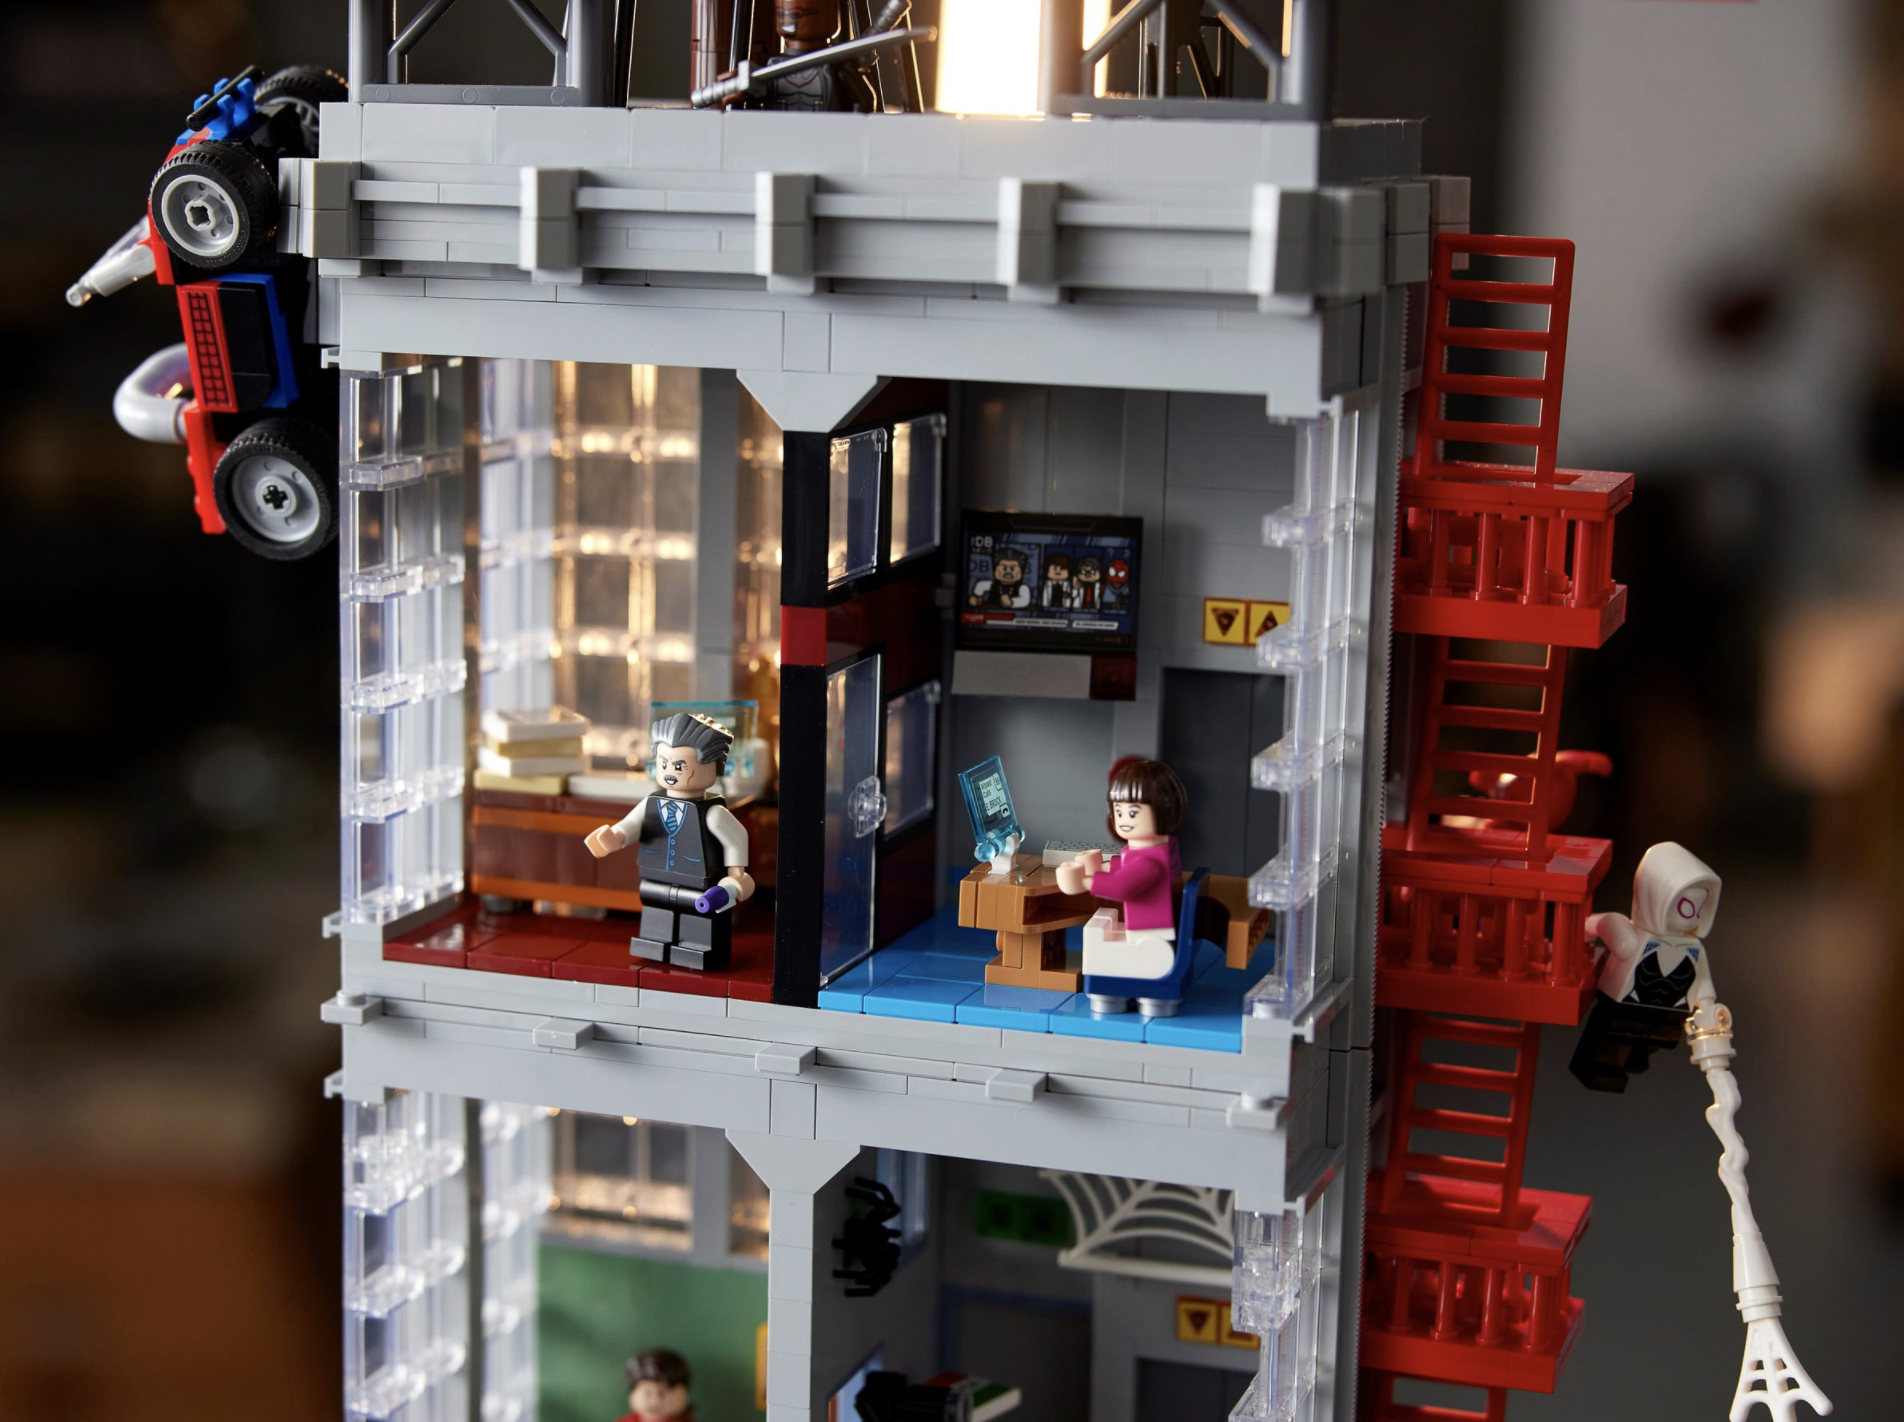 Daily Bugle Minifigures - Footer Image